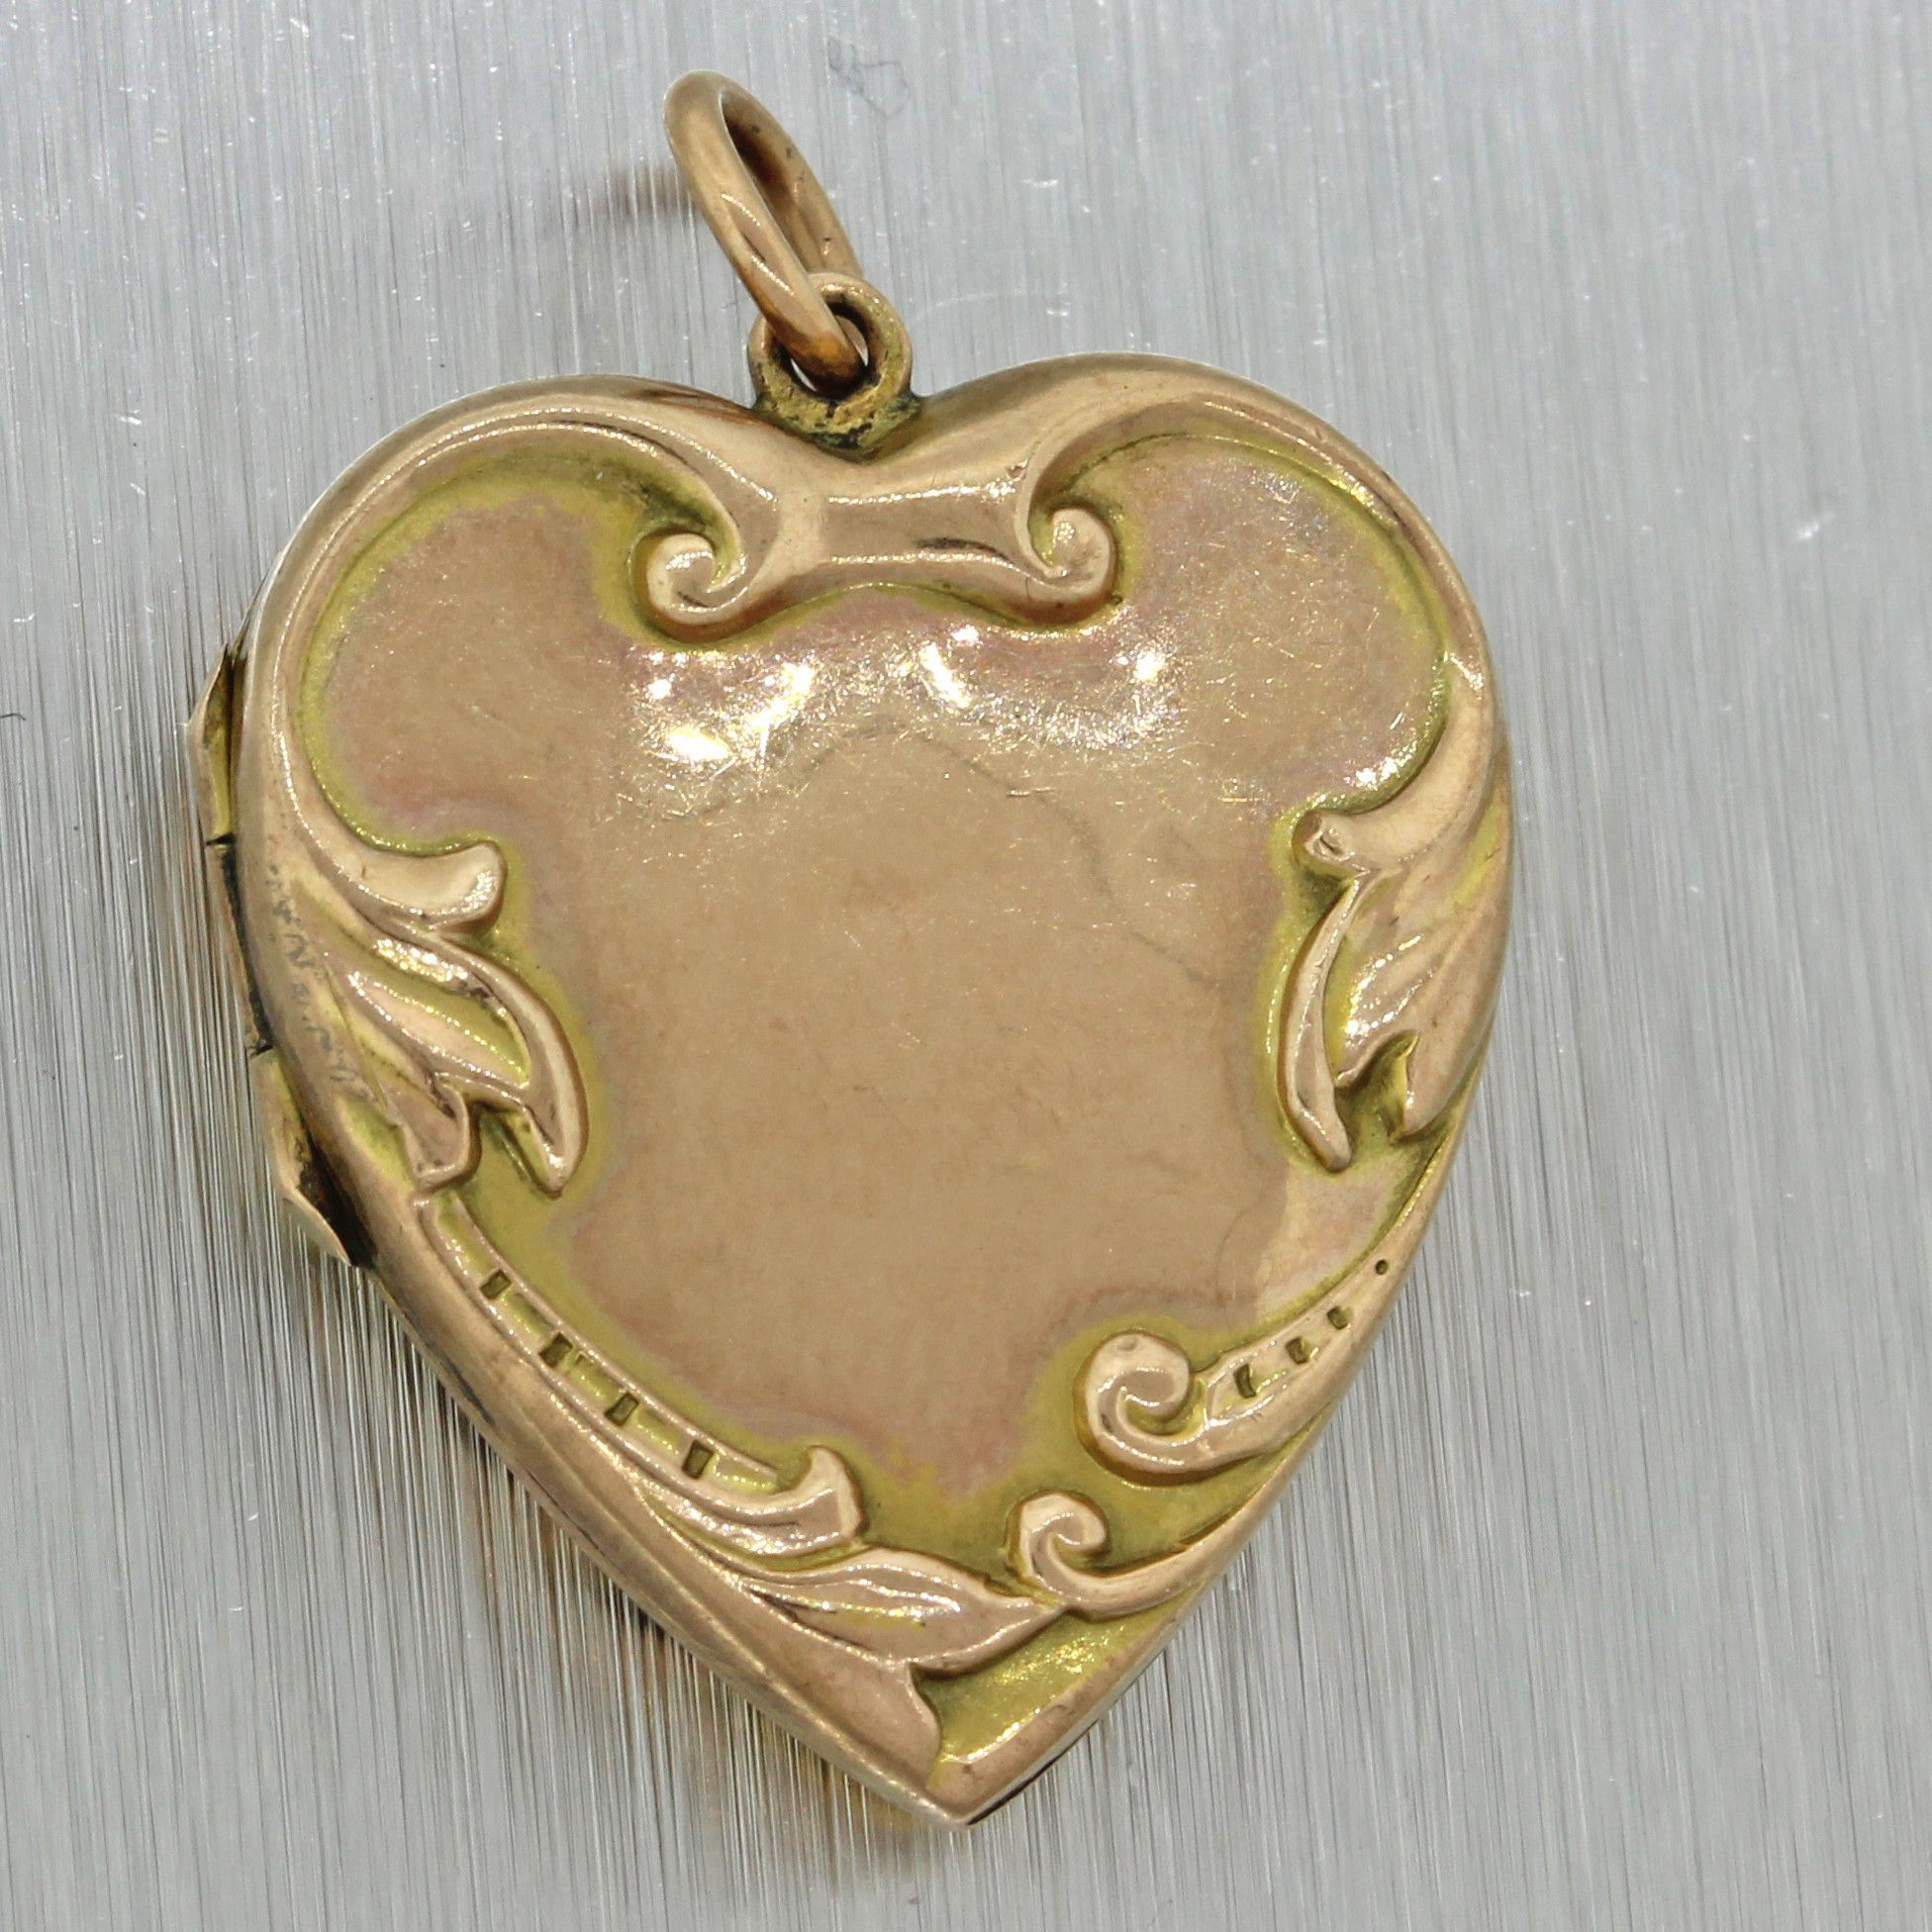 Antique victorian estate 9ct solid yellow gold heart locket pendant 1880s antique victorian estate 9ct solid yellow gold heart locket pendant mozeypictures Images